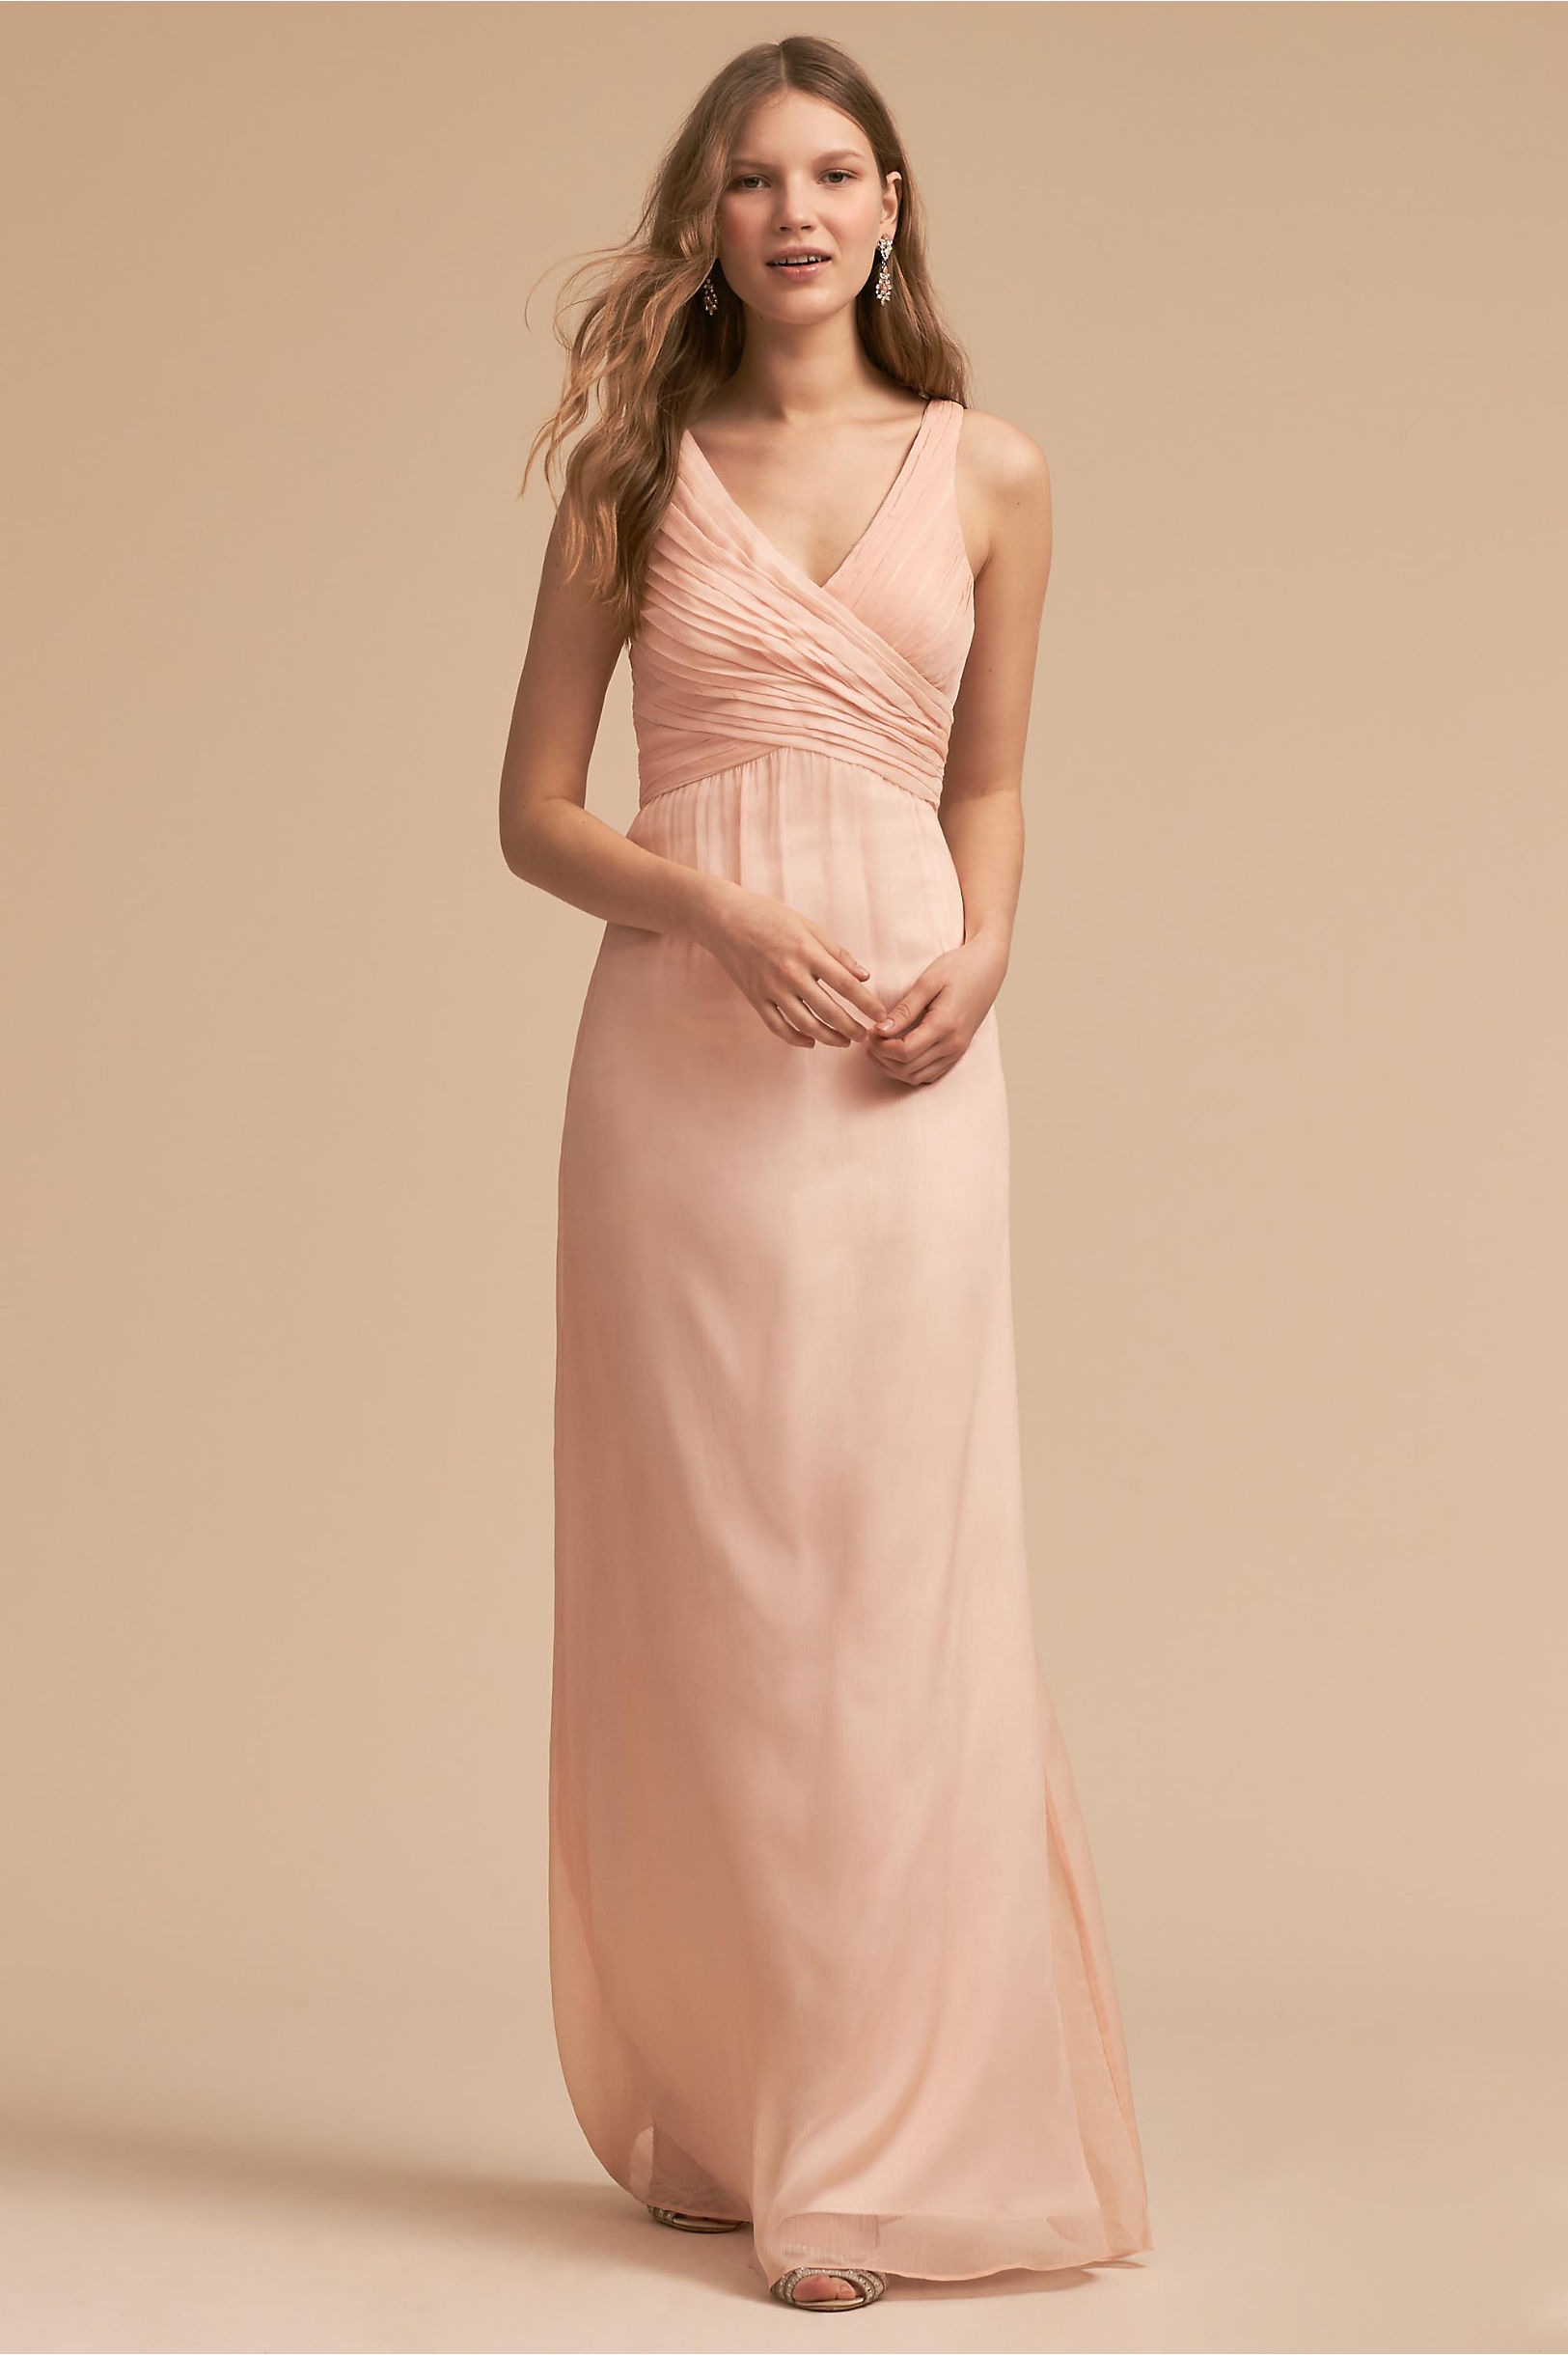 Blush colored light pink bridesmaid dresses bhldn angie dress ombrellifo Choice Image